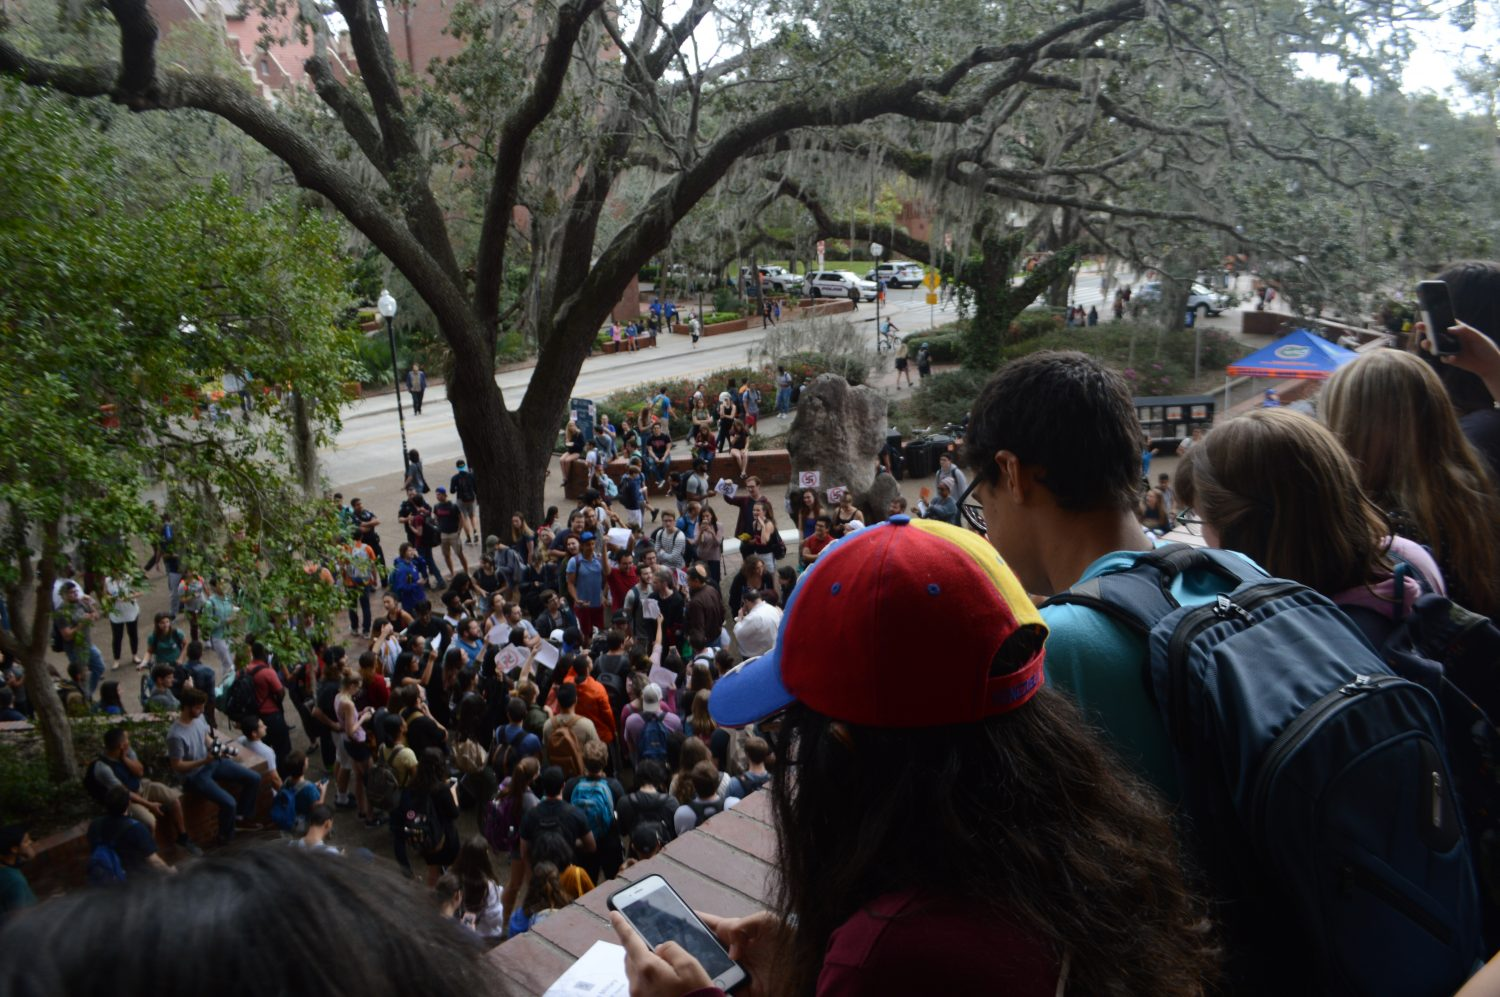 UF students look on from Turlington Hall. (Cecilia Lemus/WUFT News)